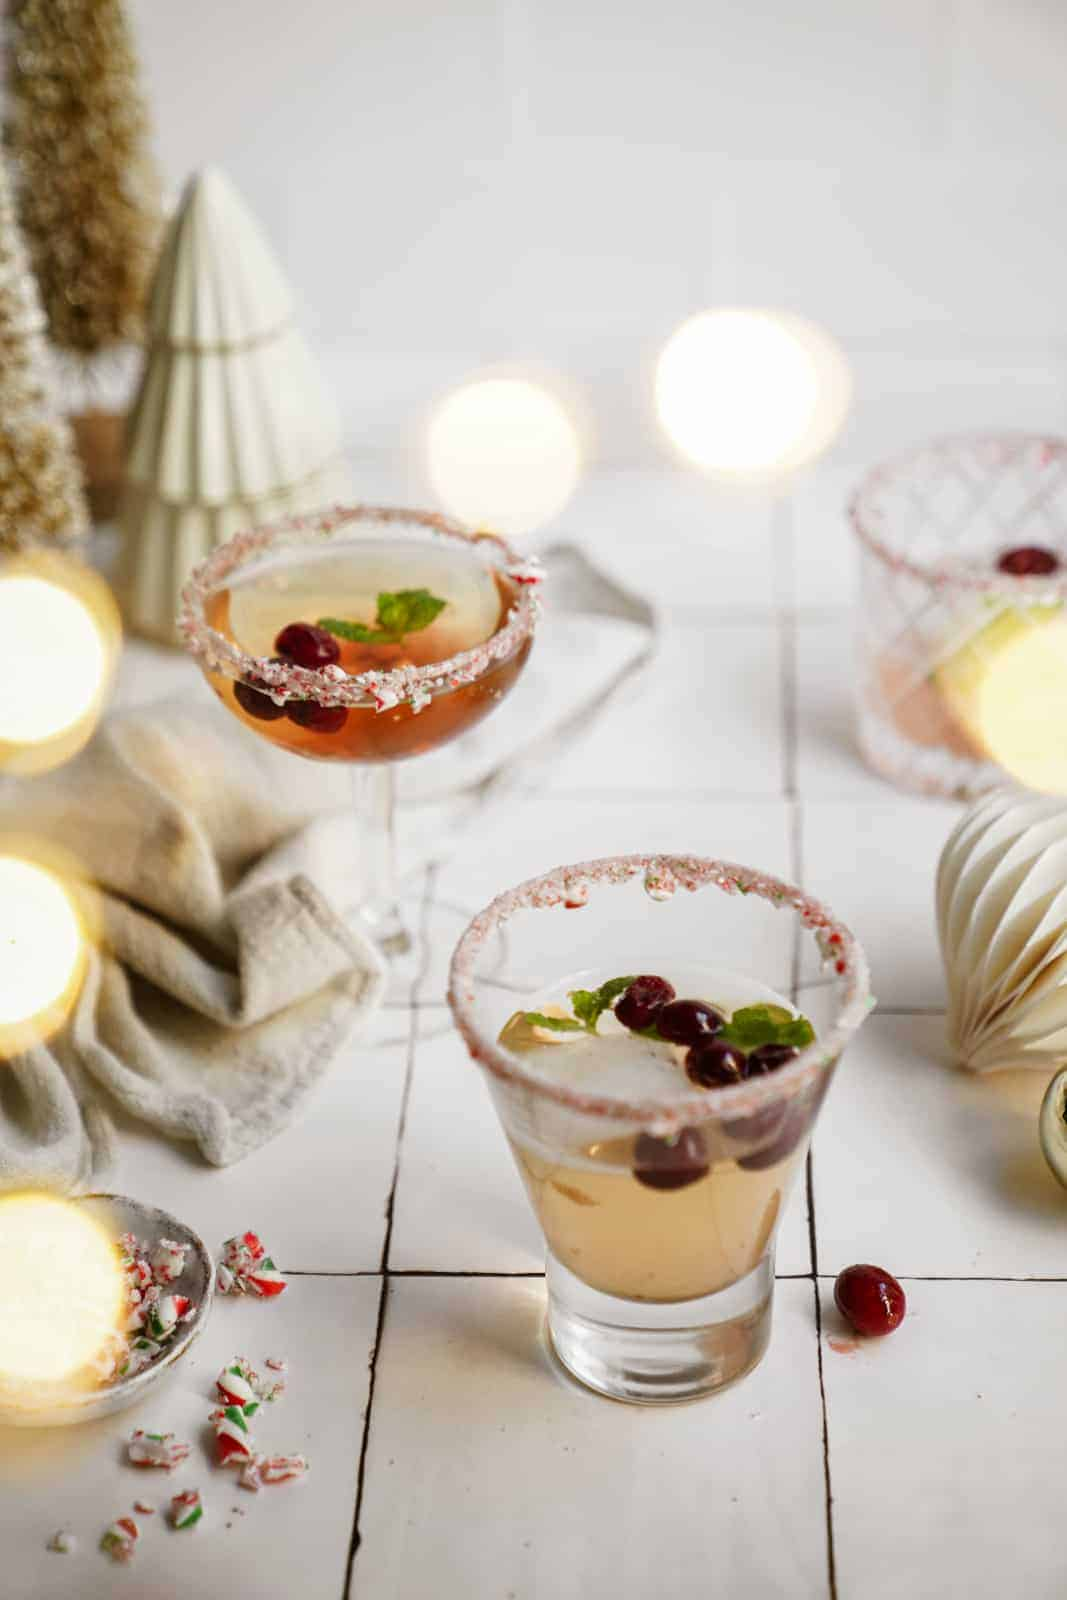 Candy cane martini in glasses on counter with a winter setting.